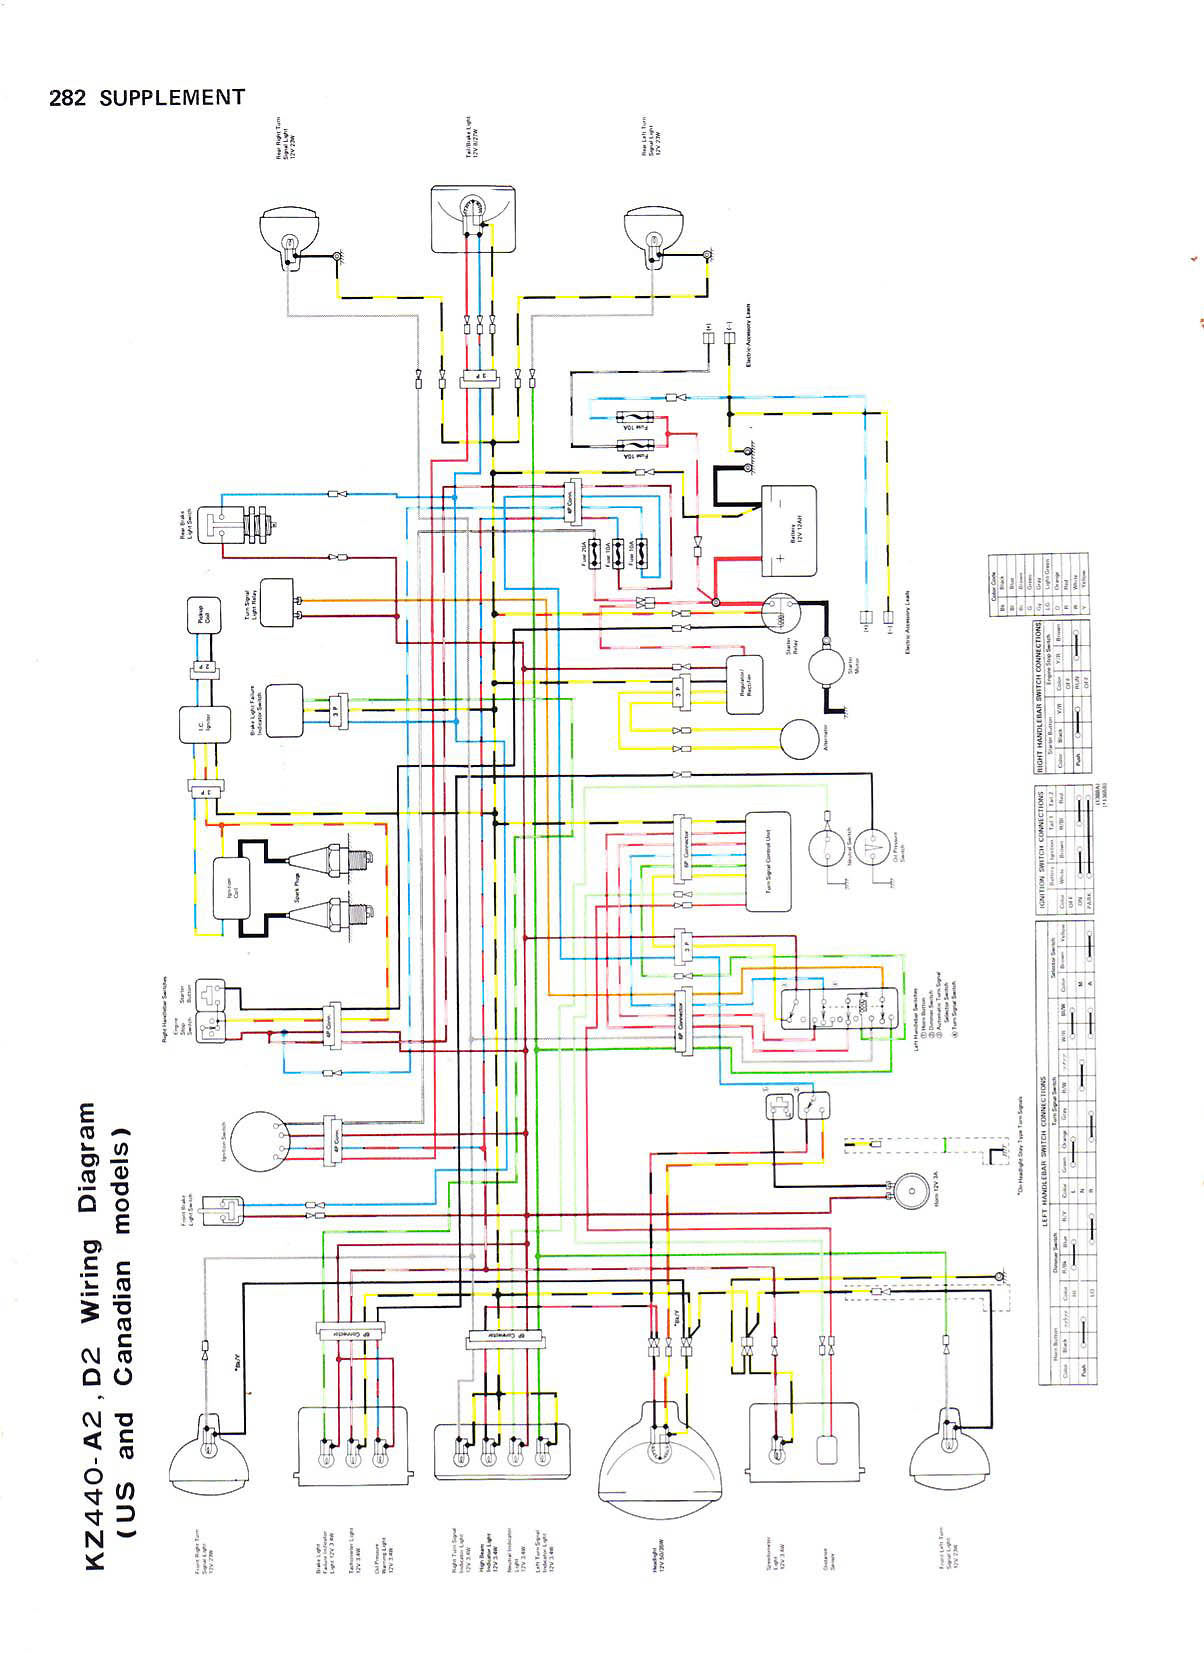 Kawasaki KZ 440 %2780 a %2782 Service Manual_Page_279 kz400 wiring diagram 1983 kawasaki motorcycle wiring diagrams  at crackthecode.co